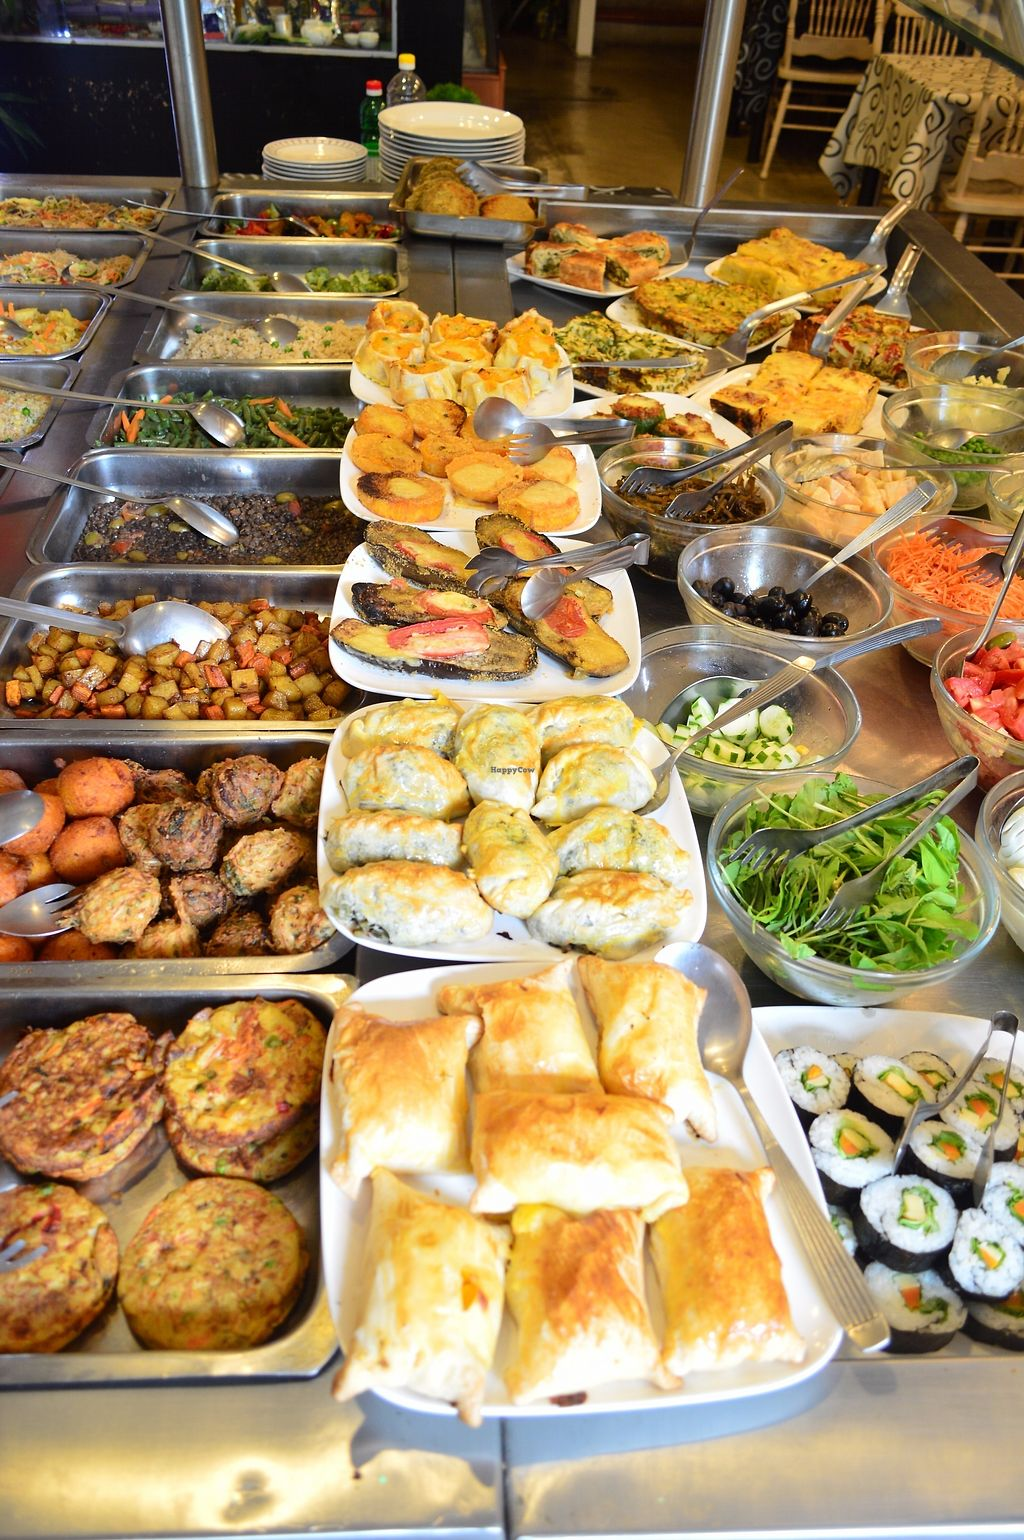 """Photo of Pei Chen Resto  by <a href=""""/members/profile/PeiChenRest%C3%B3"""">PeiChenRestó</a> <br/>Vegetarian Buffet by the pound <br/> July 31, 2017  - <a href='/contact/abuse/image/97449/286928'>Report</a>"""